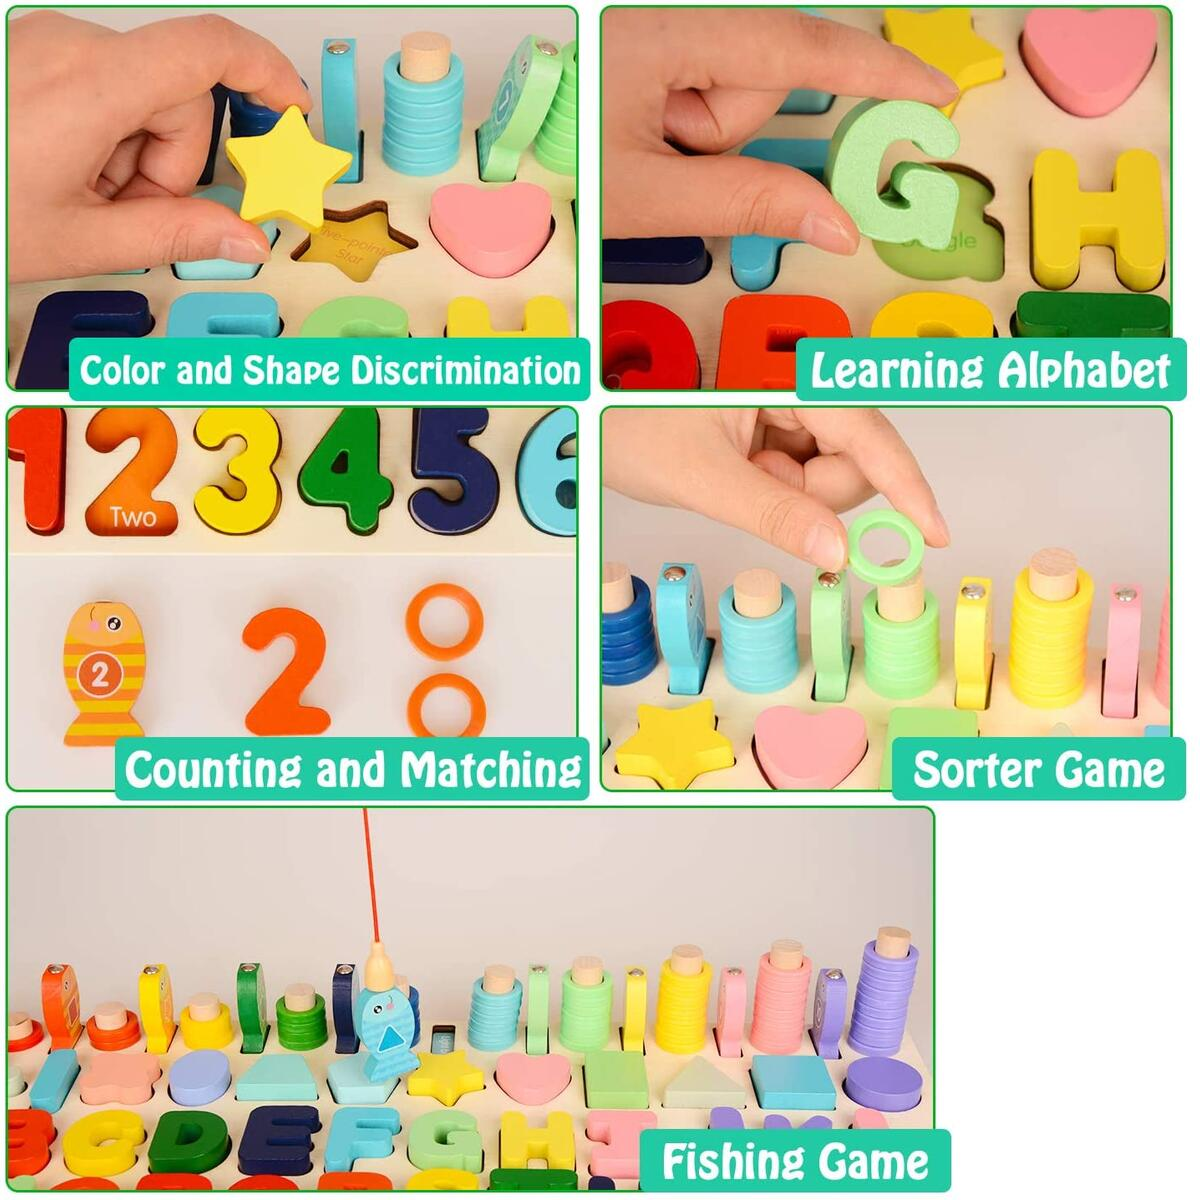 BeebeeRun Wooden Number Alphabet Puzzles Sorting Counting Learning Toys for Toddlers, Shape Sorter Fishing Game for Age 3 4 5 6 Year Olds Kids, Preschool Education Math Stacking Blocks Learning Toy